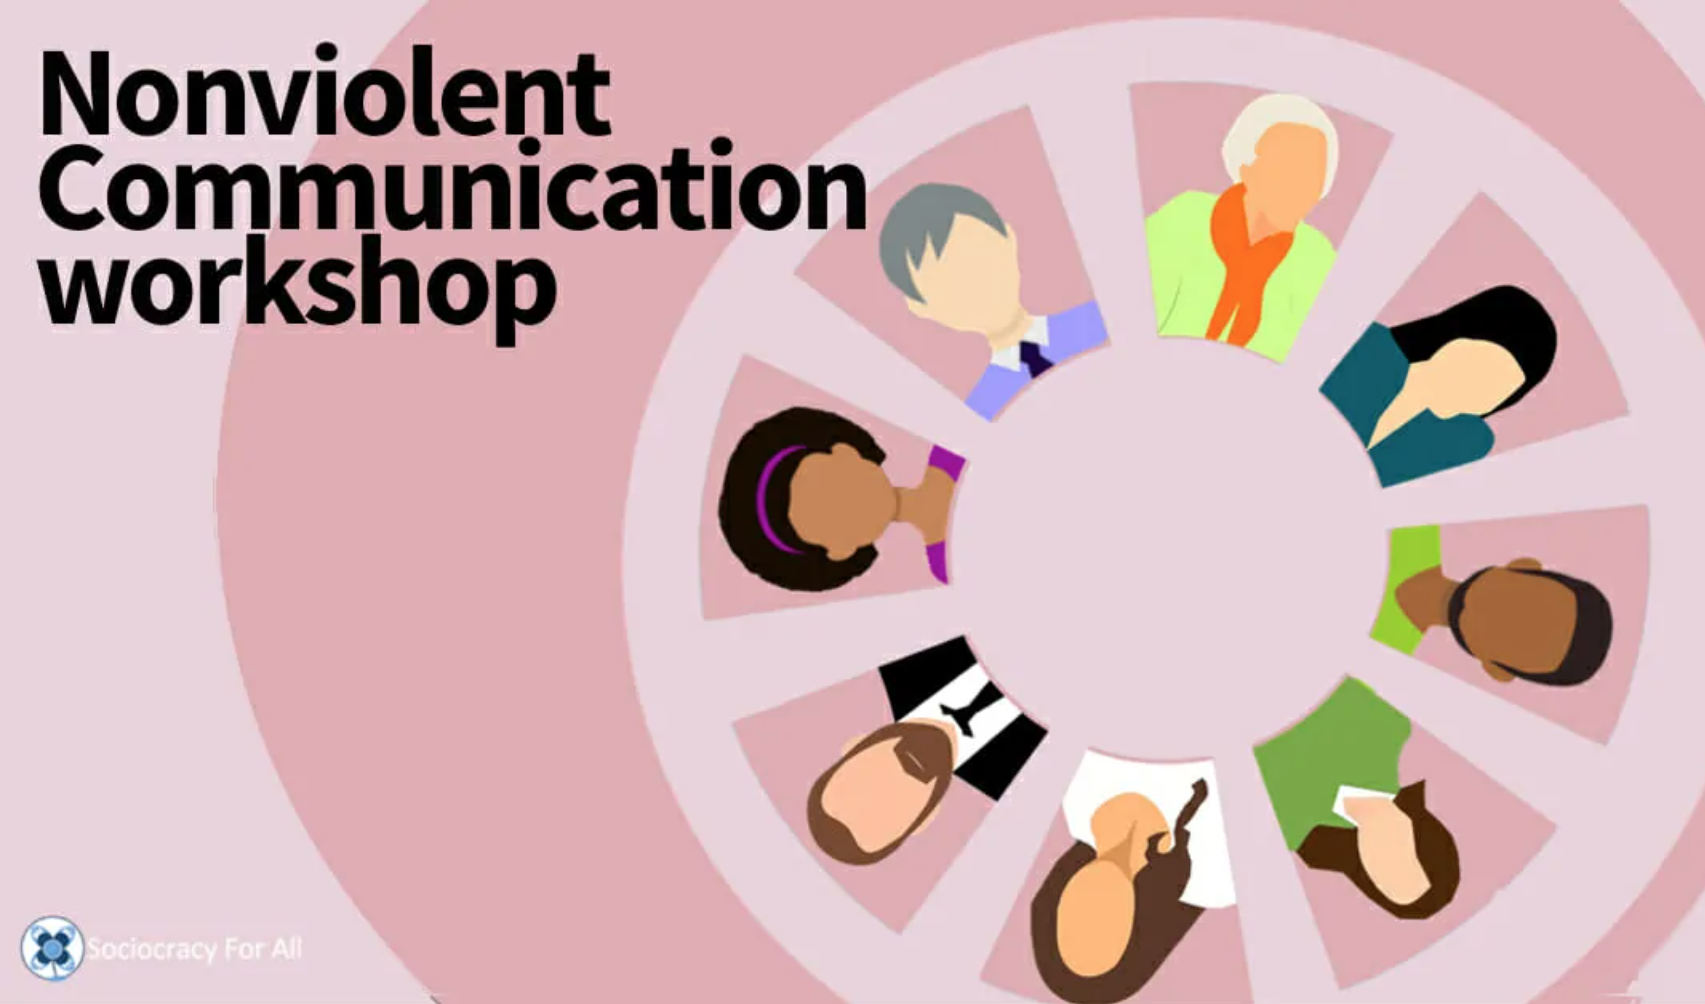 Nonviolent Communication Introduction, an offering through a sister organization